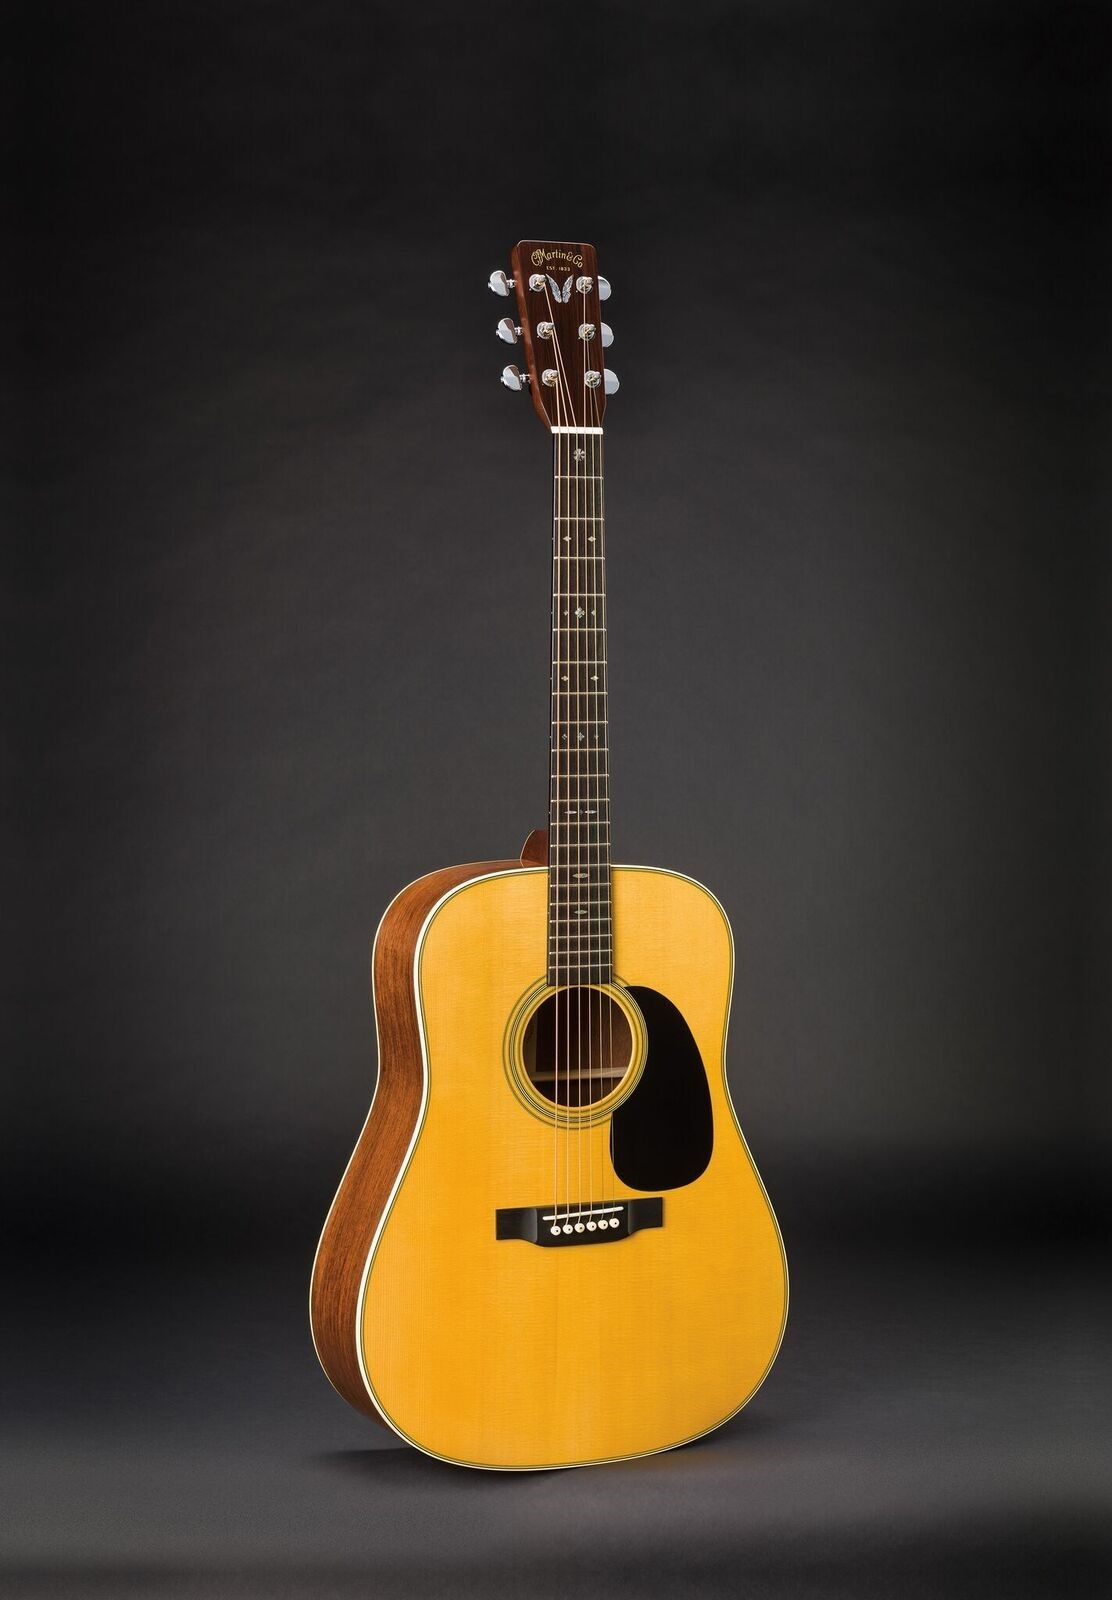 Find Martin Guitars at the booth of AMI Musical Instruments at Hall 8 Level 0 Booth F74.